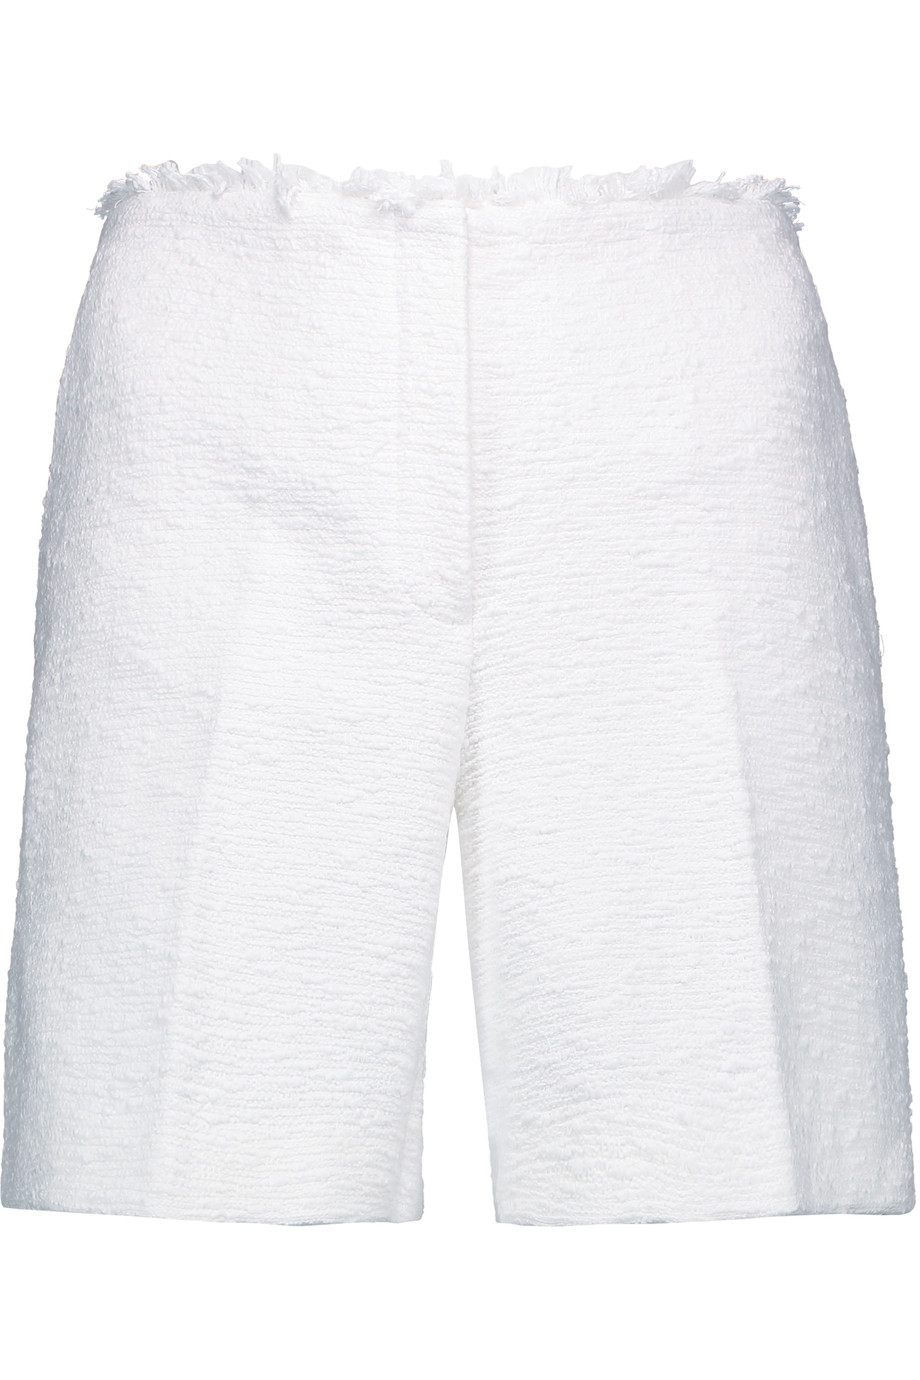 THEORY Mirak Spring Tweed Shorts, White at THE OUTNET.COM